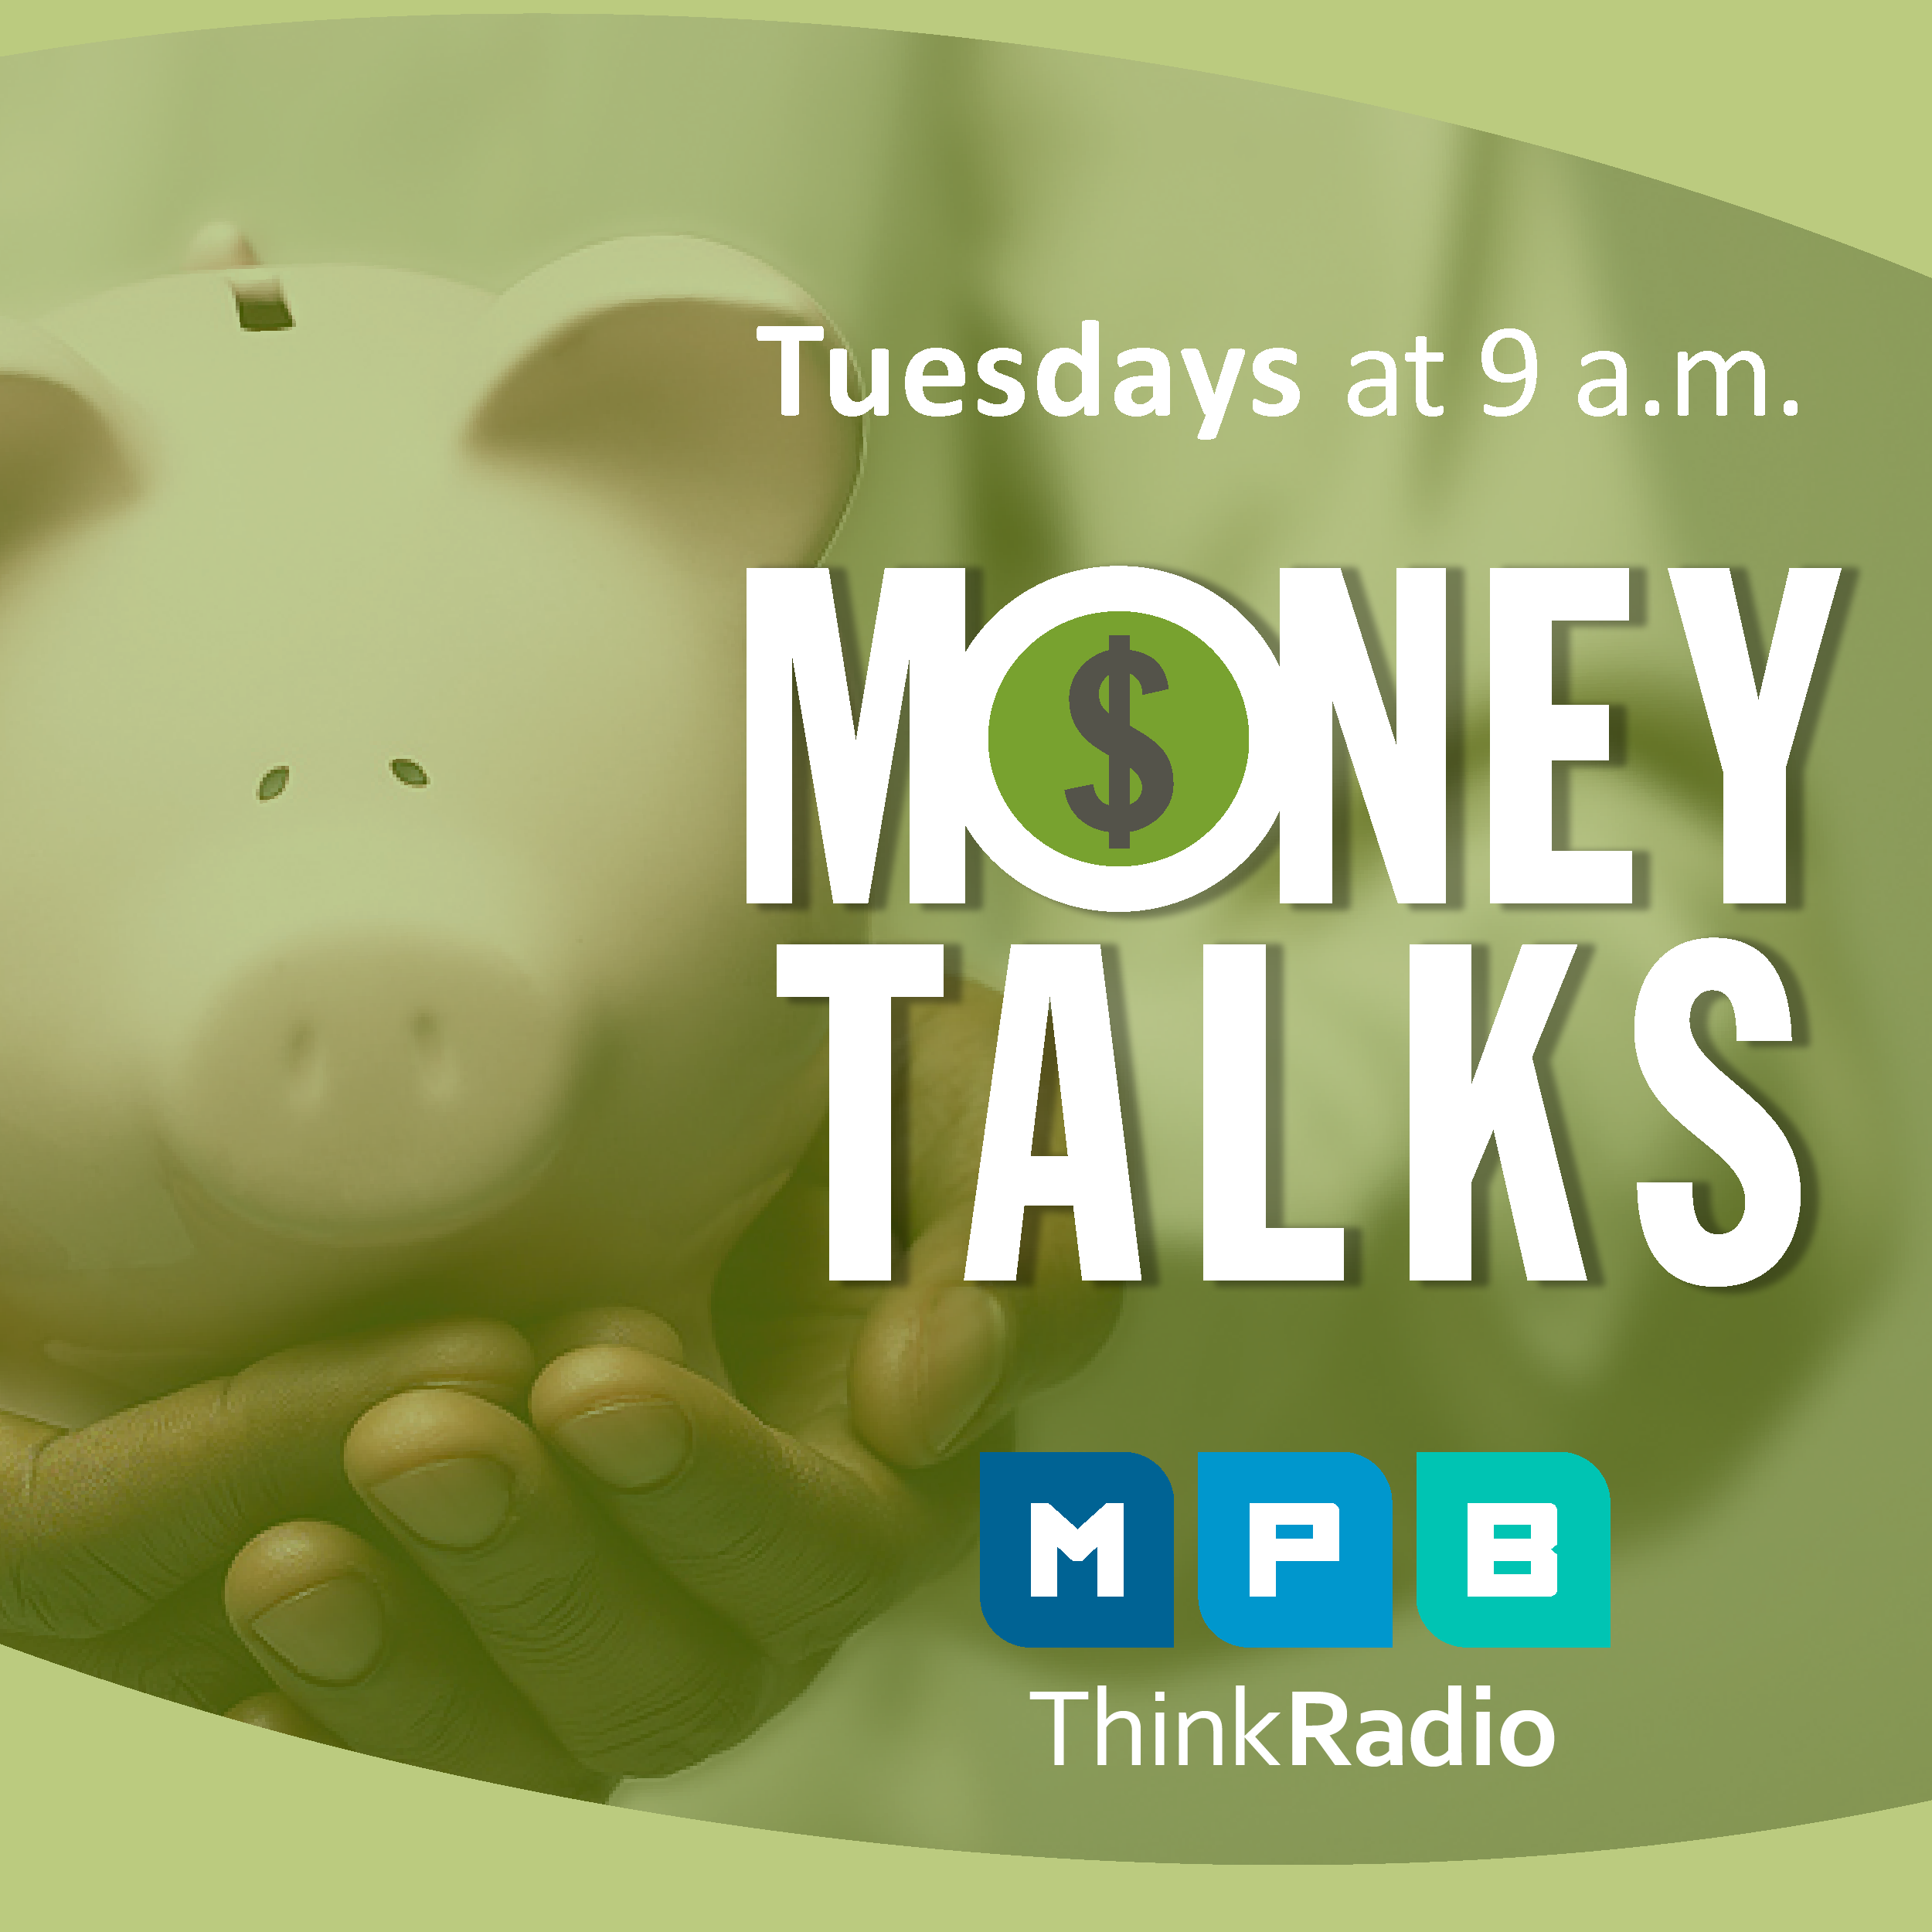 Listen to Money Talks every Tuesday at 9 a.m. on MPB Think Radio